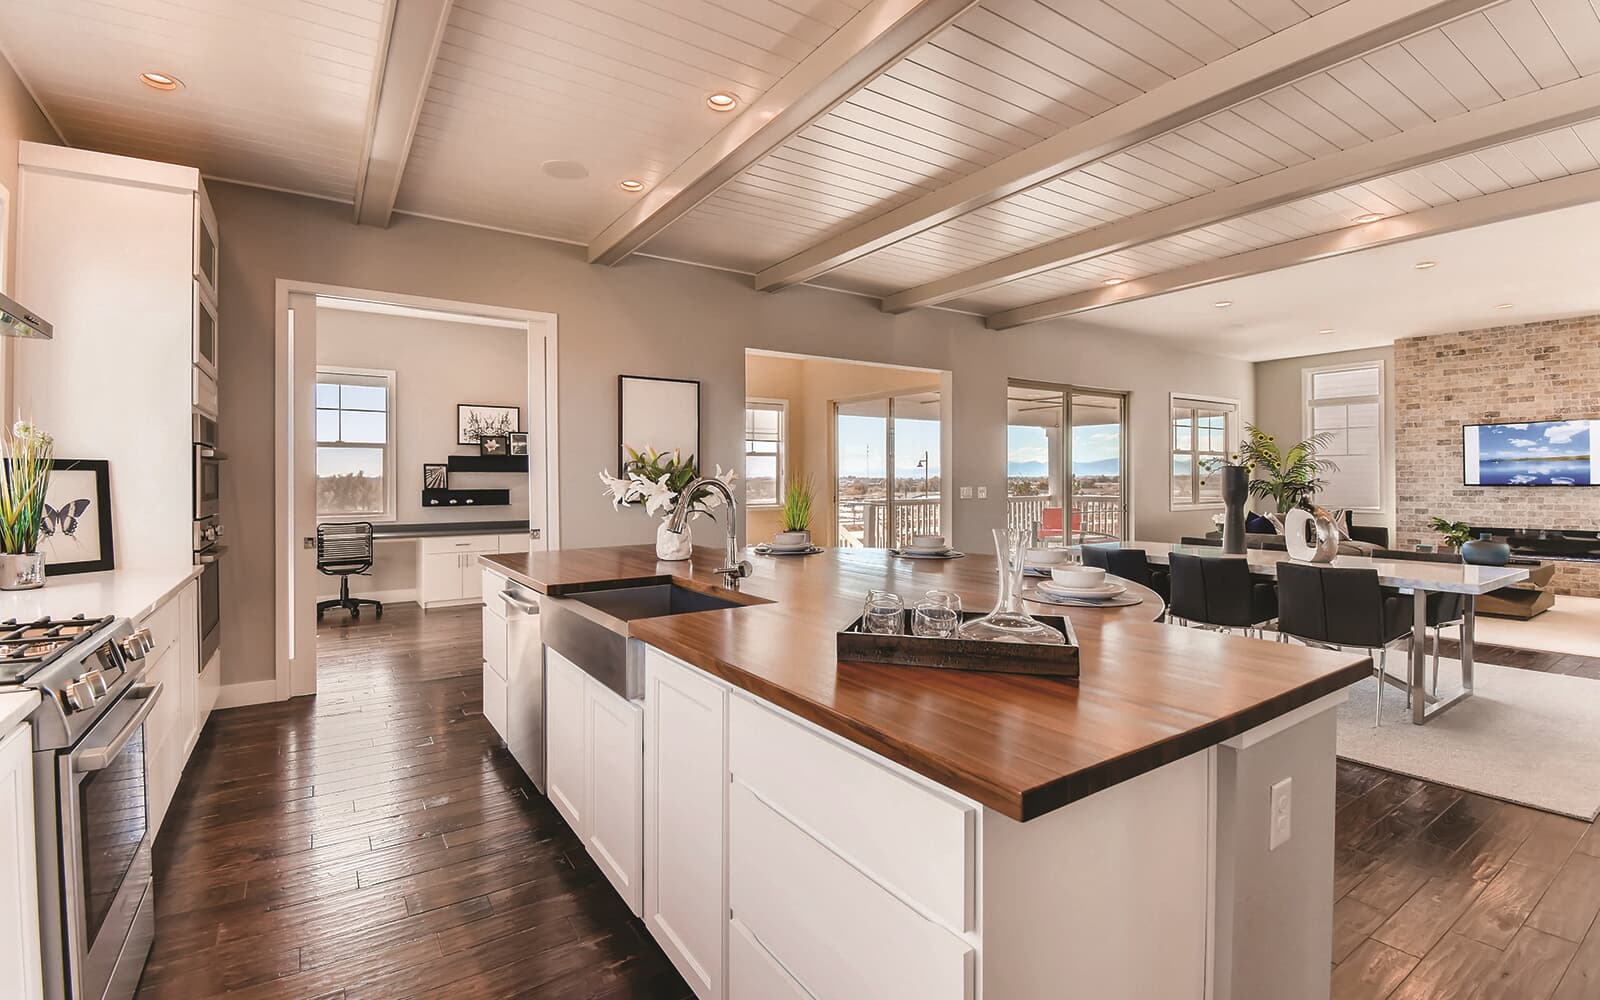 Harvest-Three-Model-Interior-Kitchen-Barefoot-Lakes-Denver-Colorado